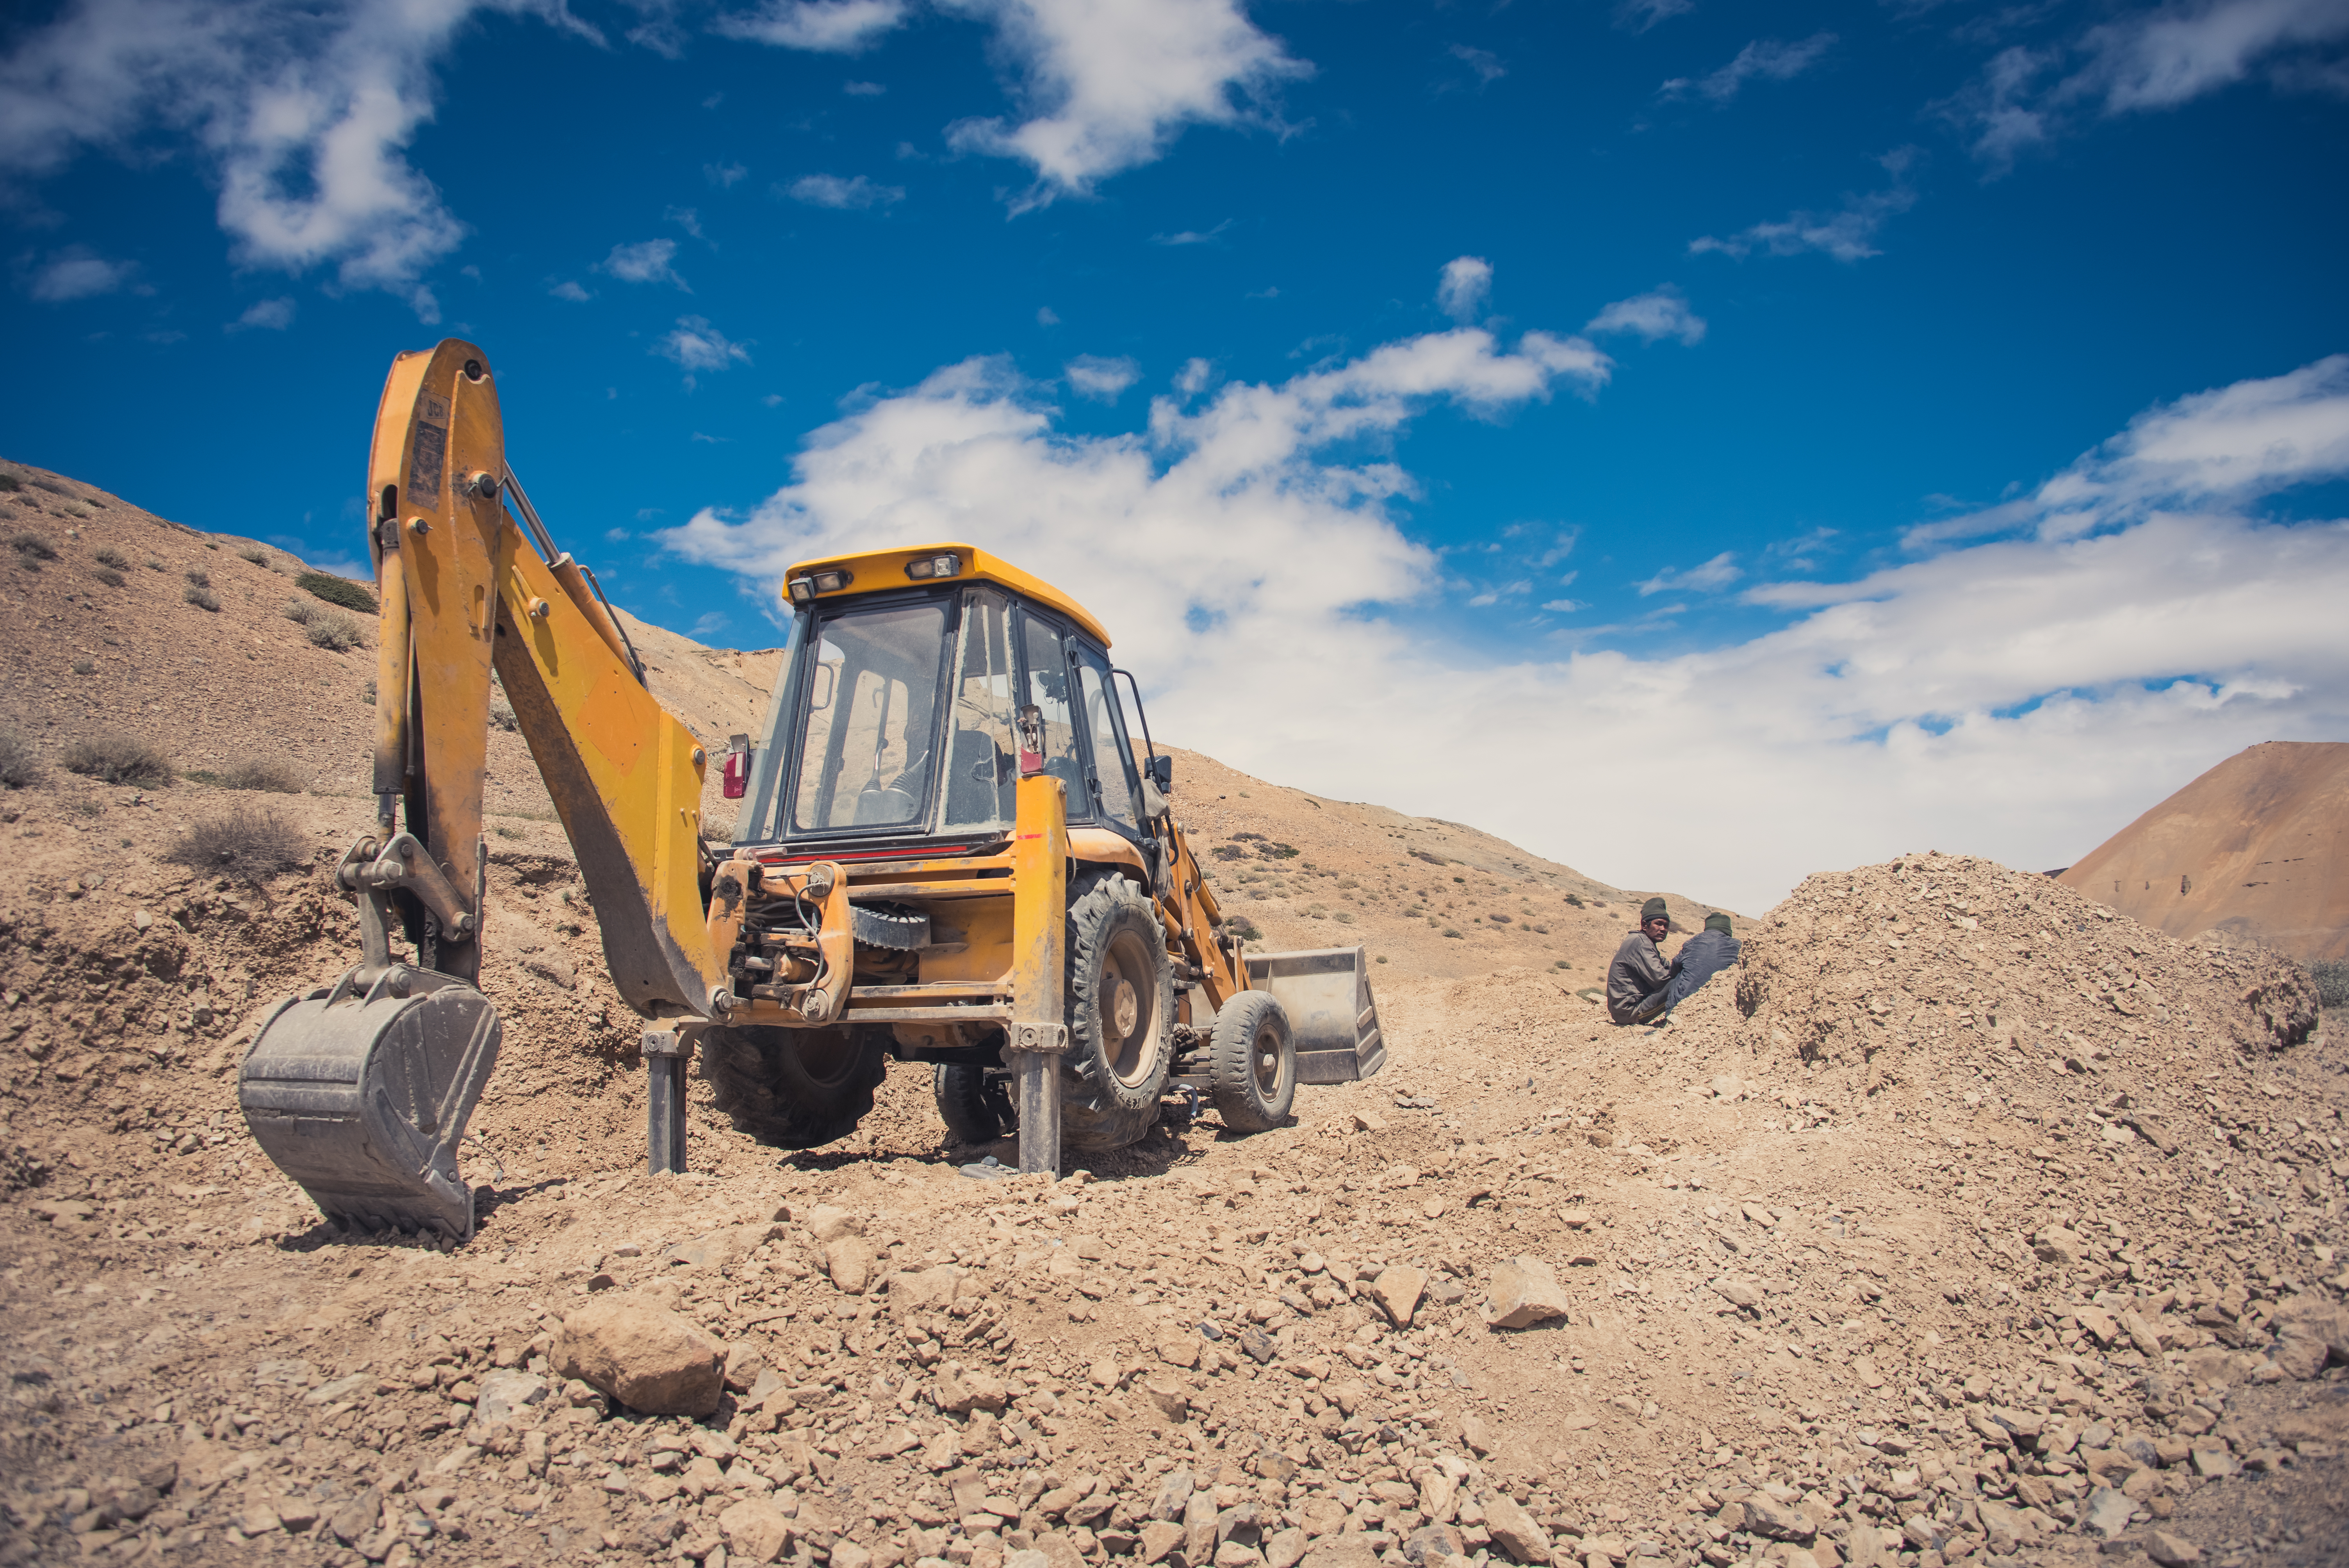 Earth Mover Takes A Lunch Break